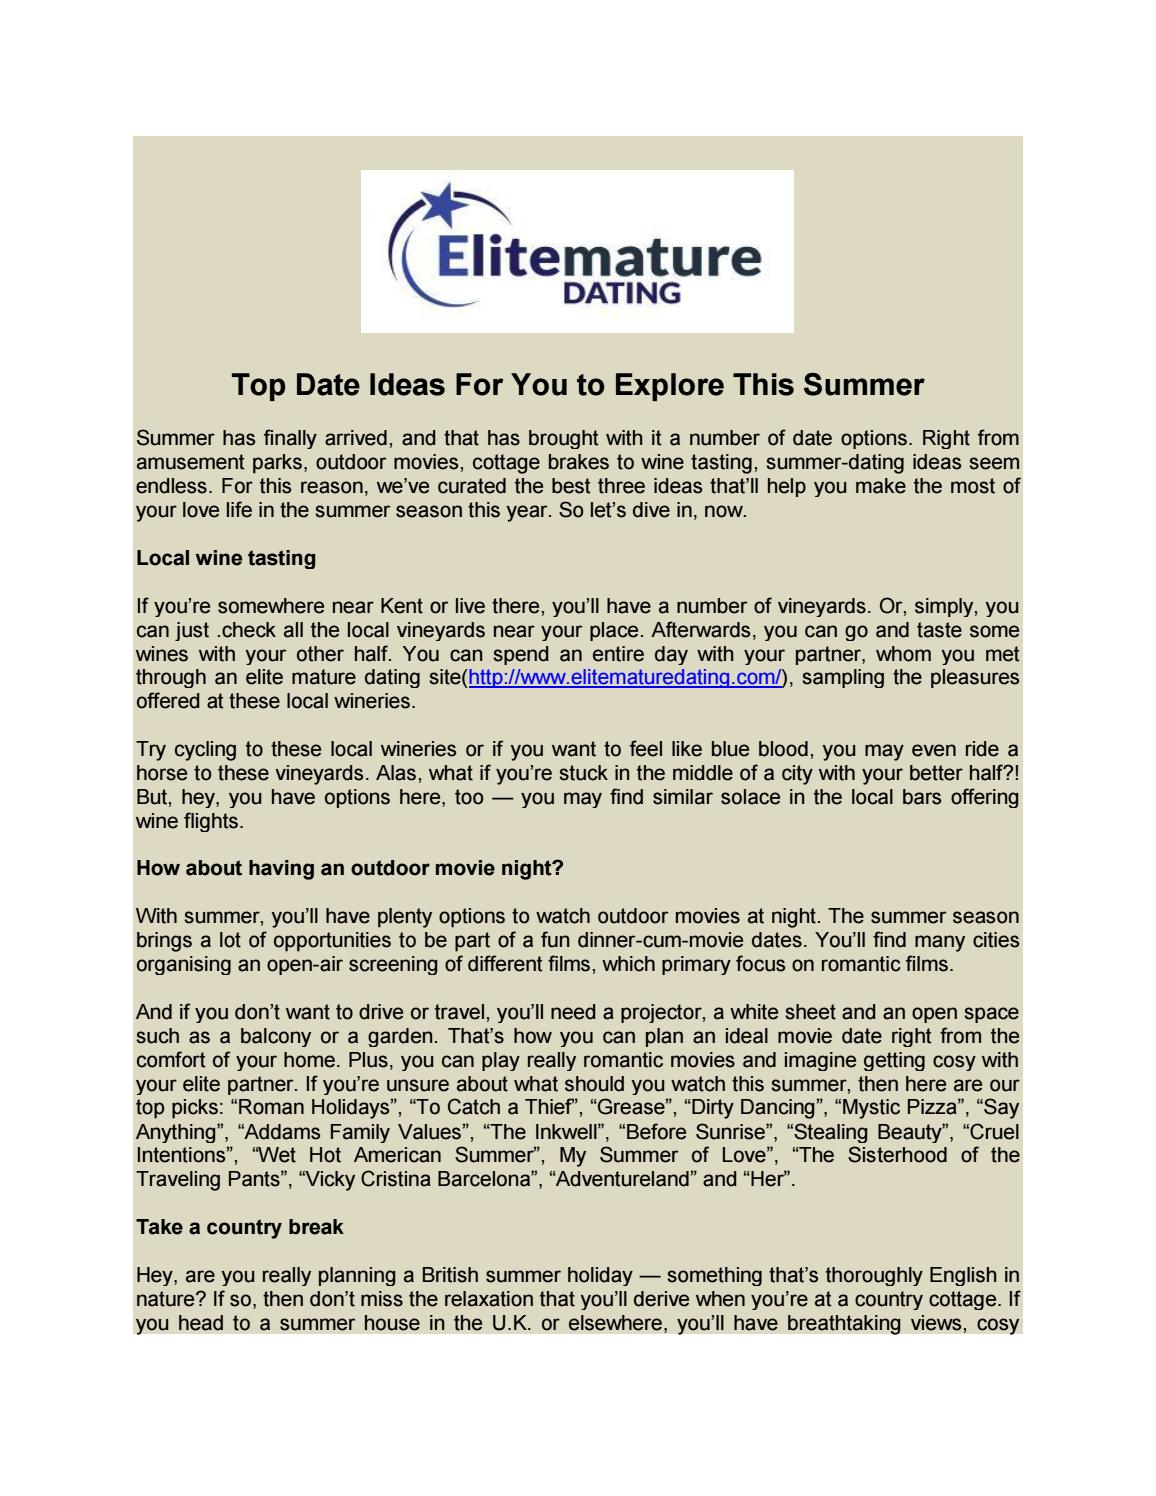 top date ideas for you to explore this summerelitematuredating